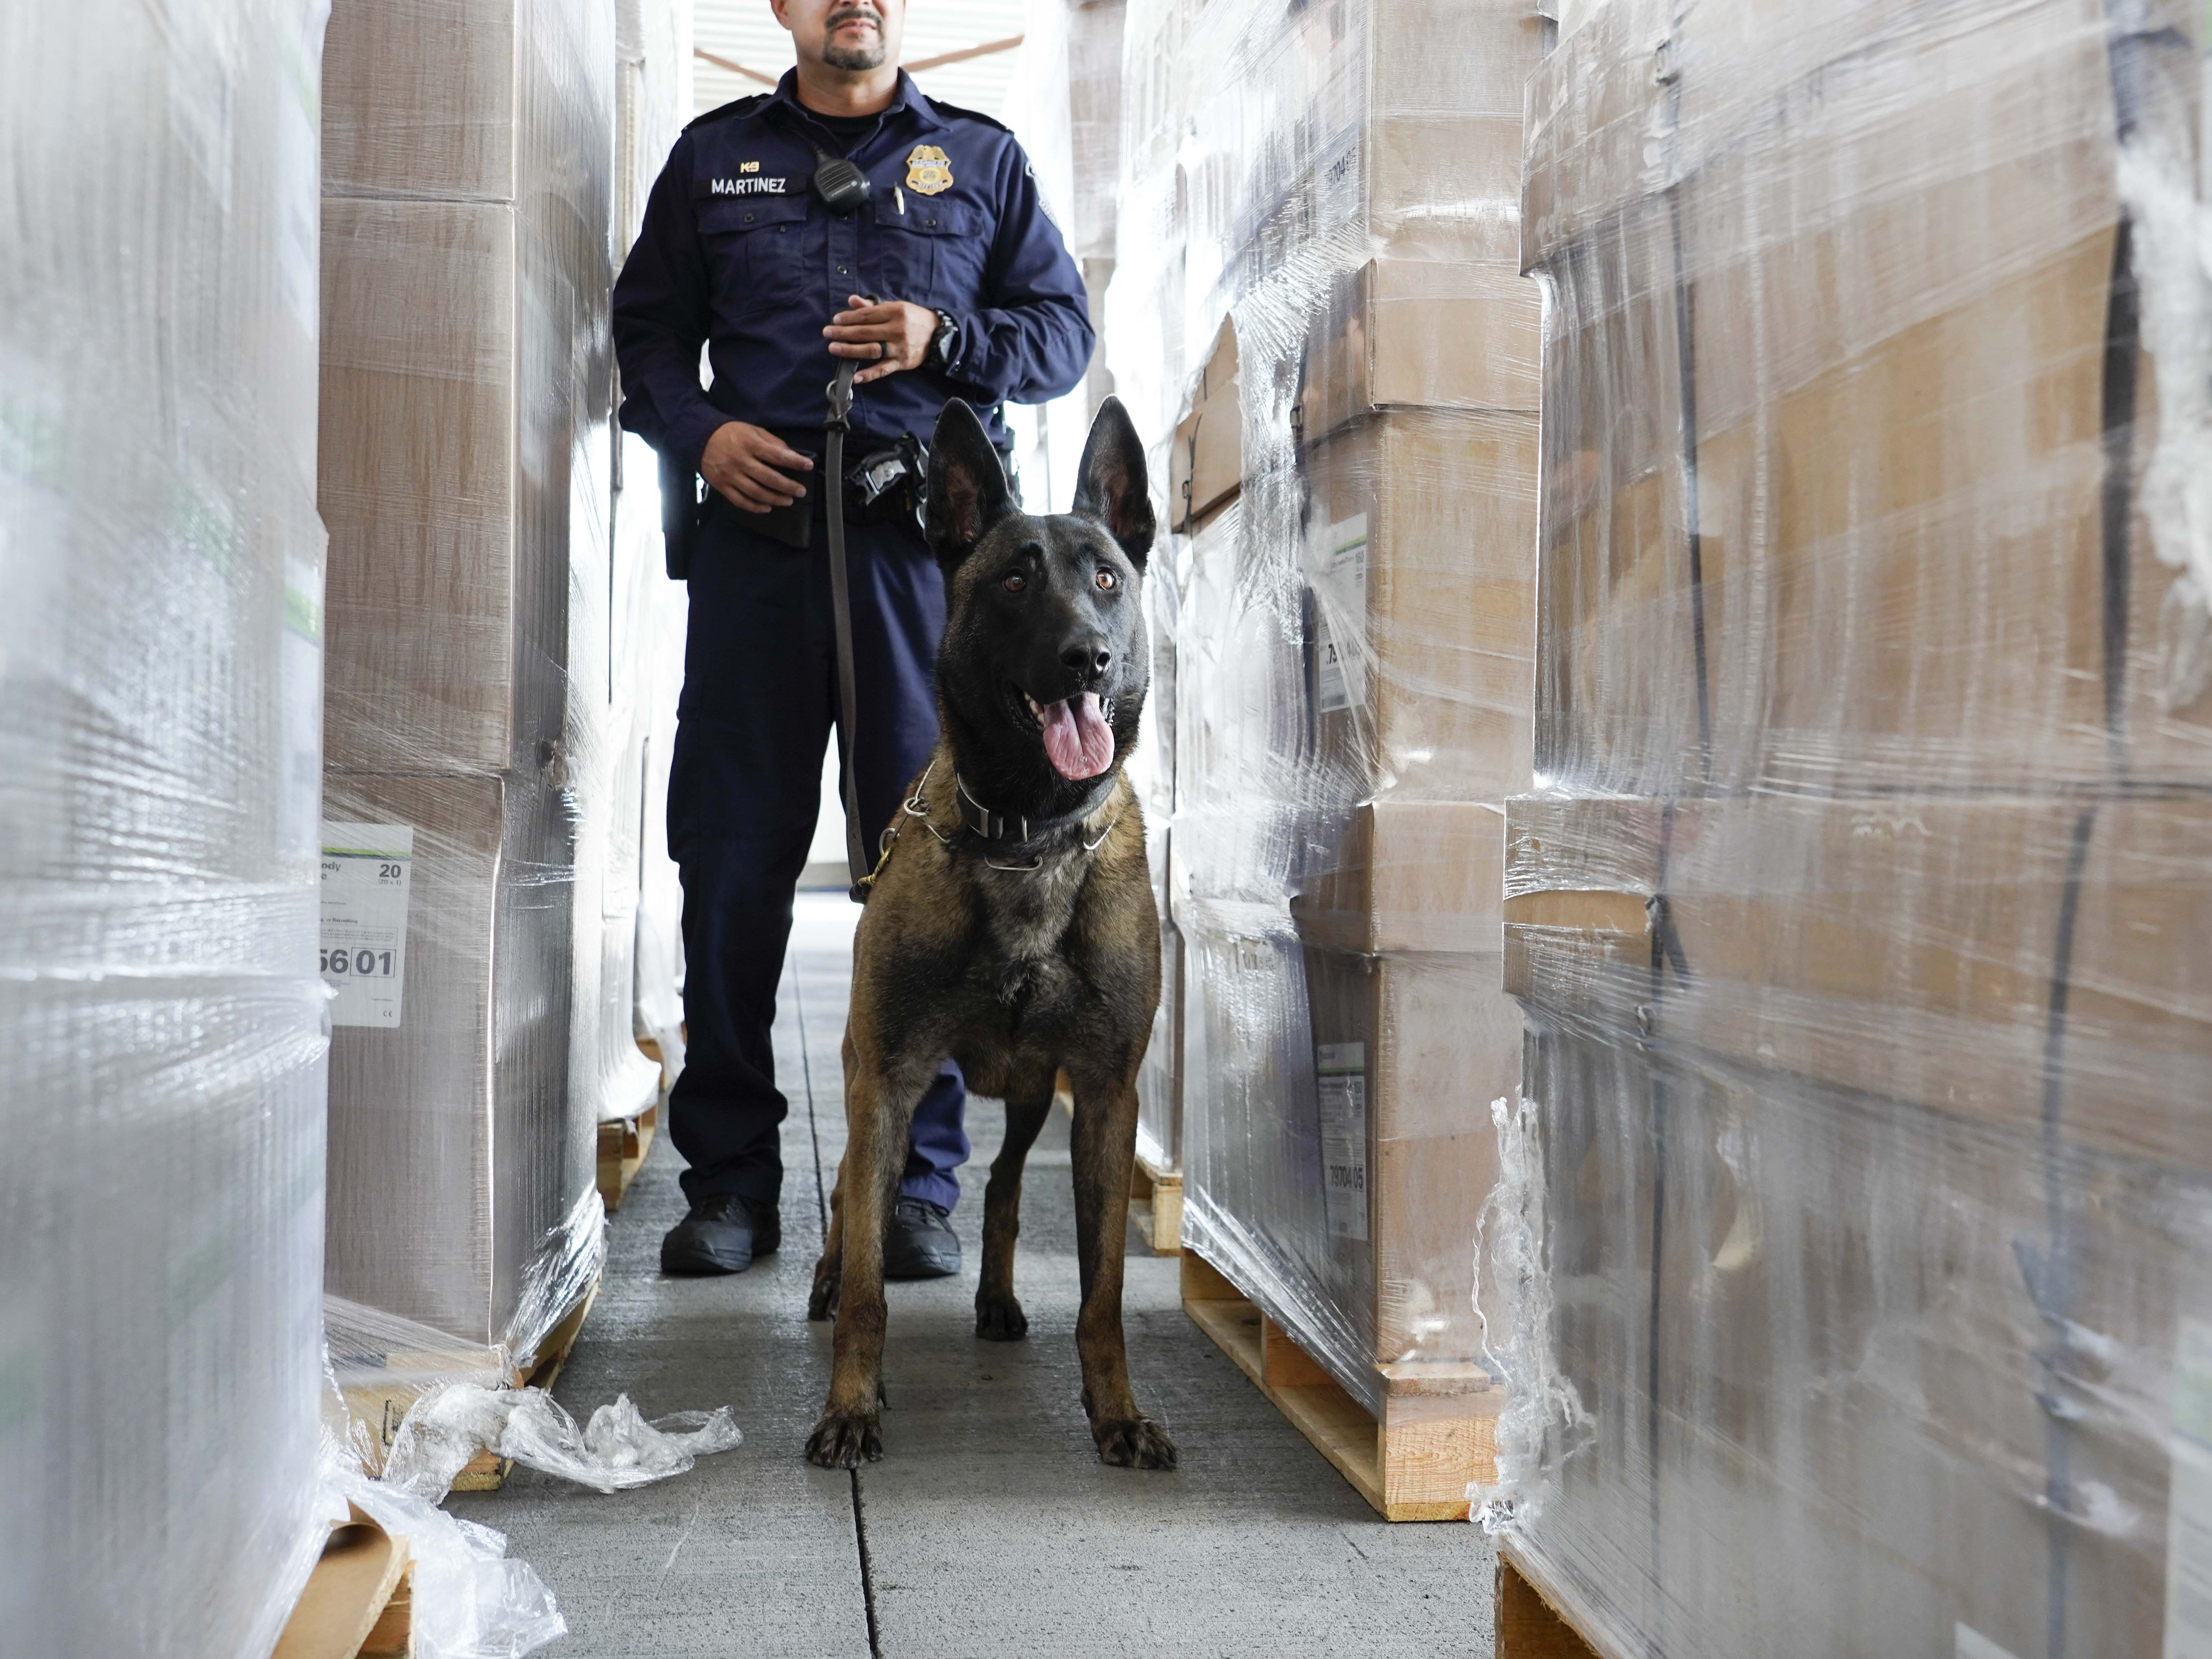 K-9 dog performs his duty with Customs and Border Protection and National Guard personnel Aug. 1, 2018, at the Port of Nogales (Mariposa Crossing) in Nogales, Arizona.